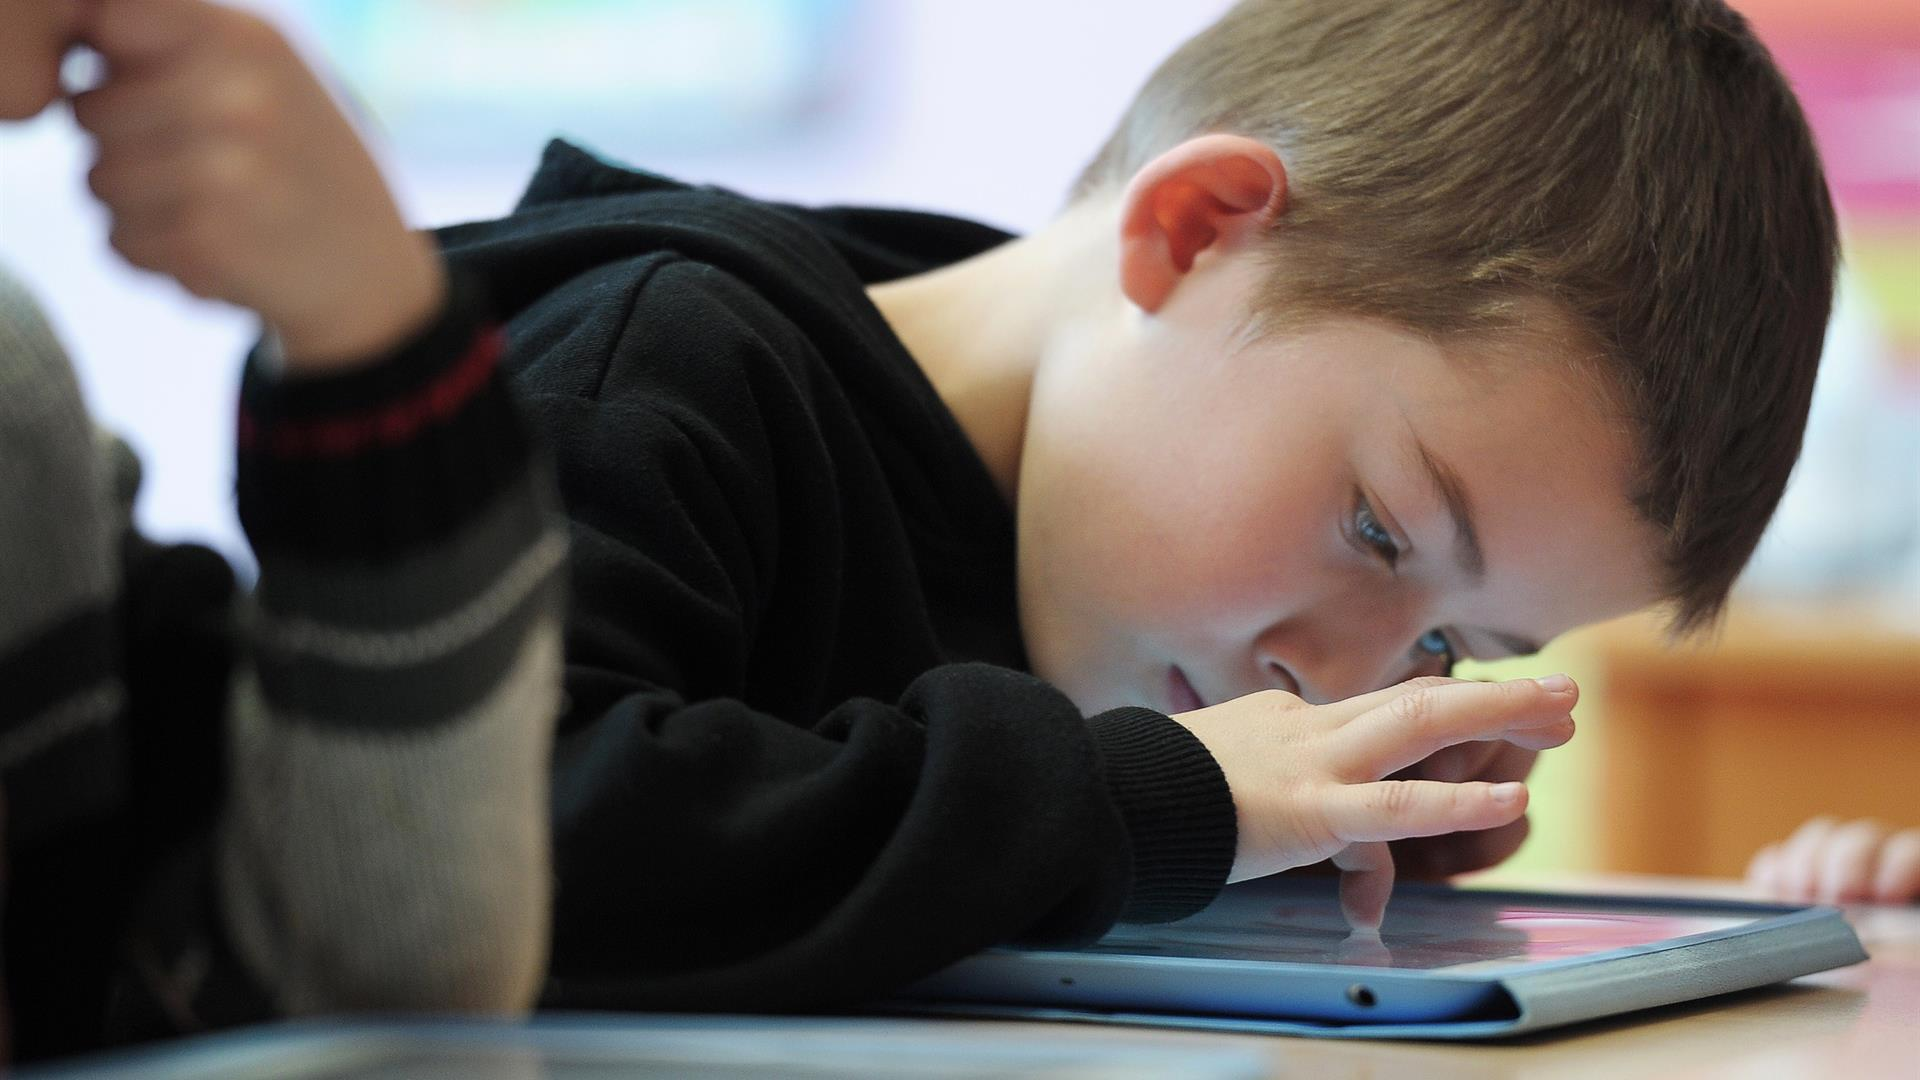 Scuola Tablet FREDERICK FLORIN:AFP:Getty Images)Getty Images 167254071